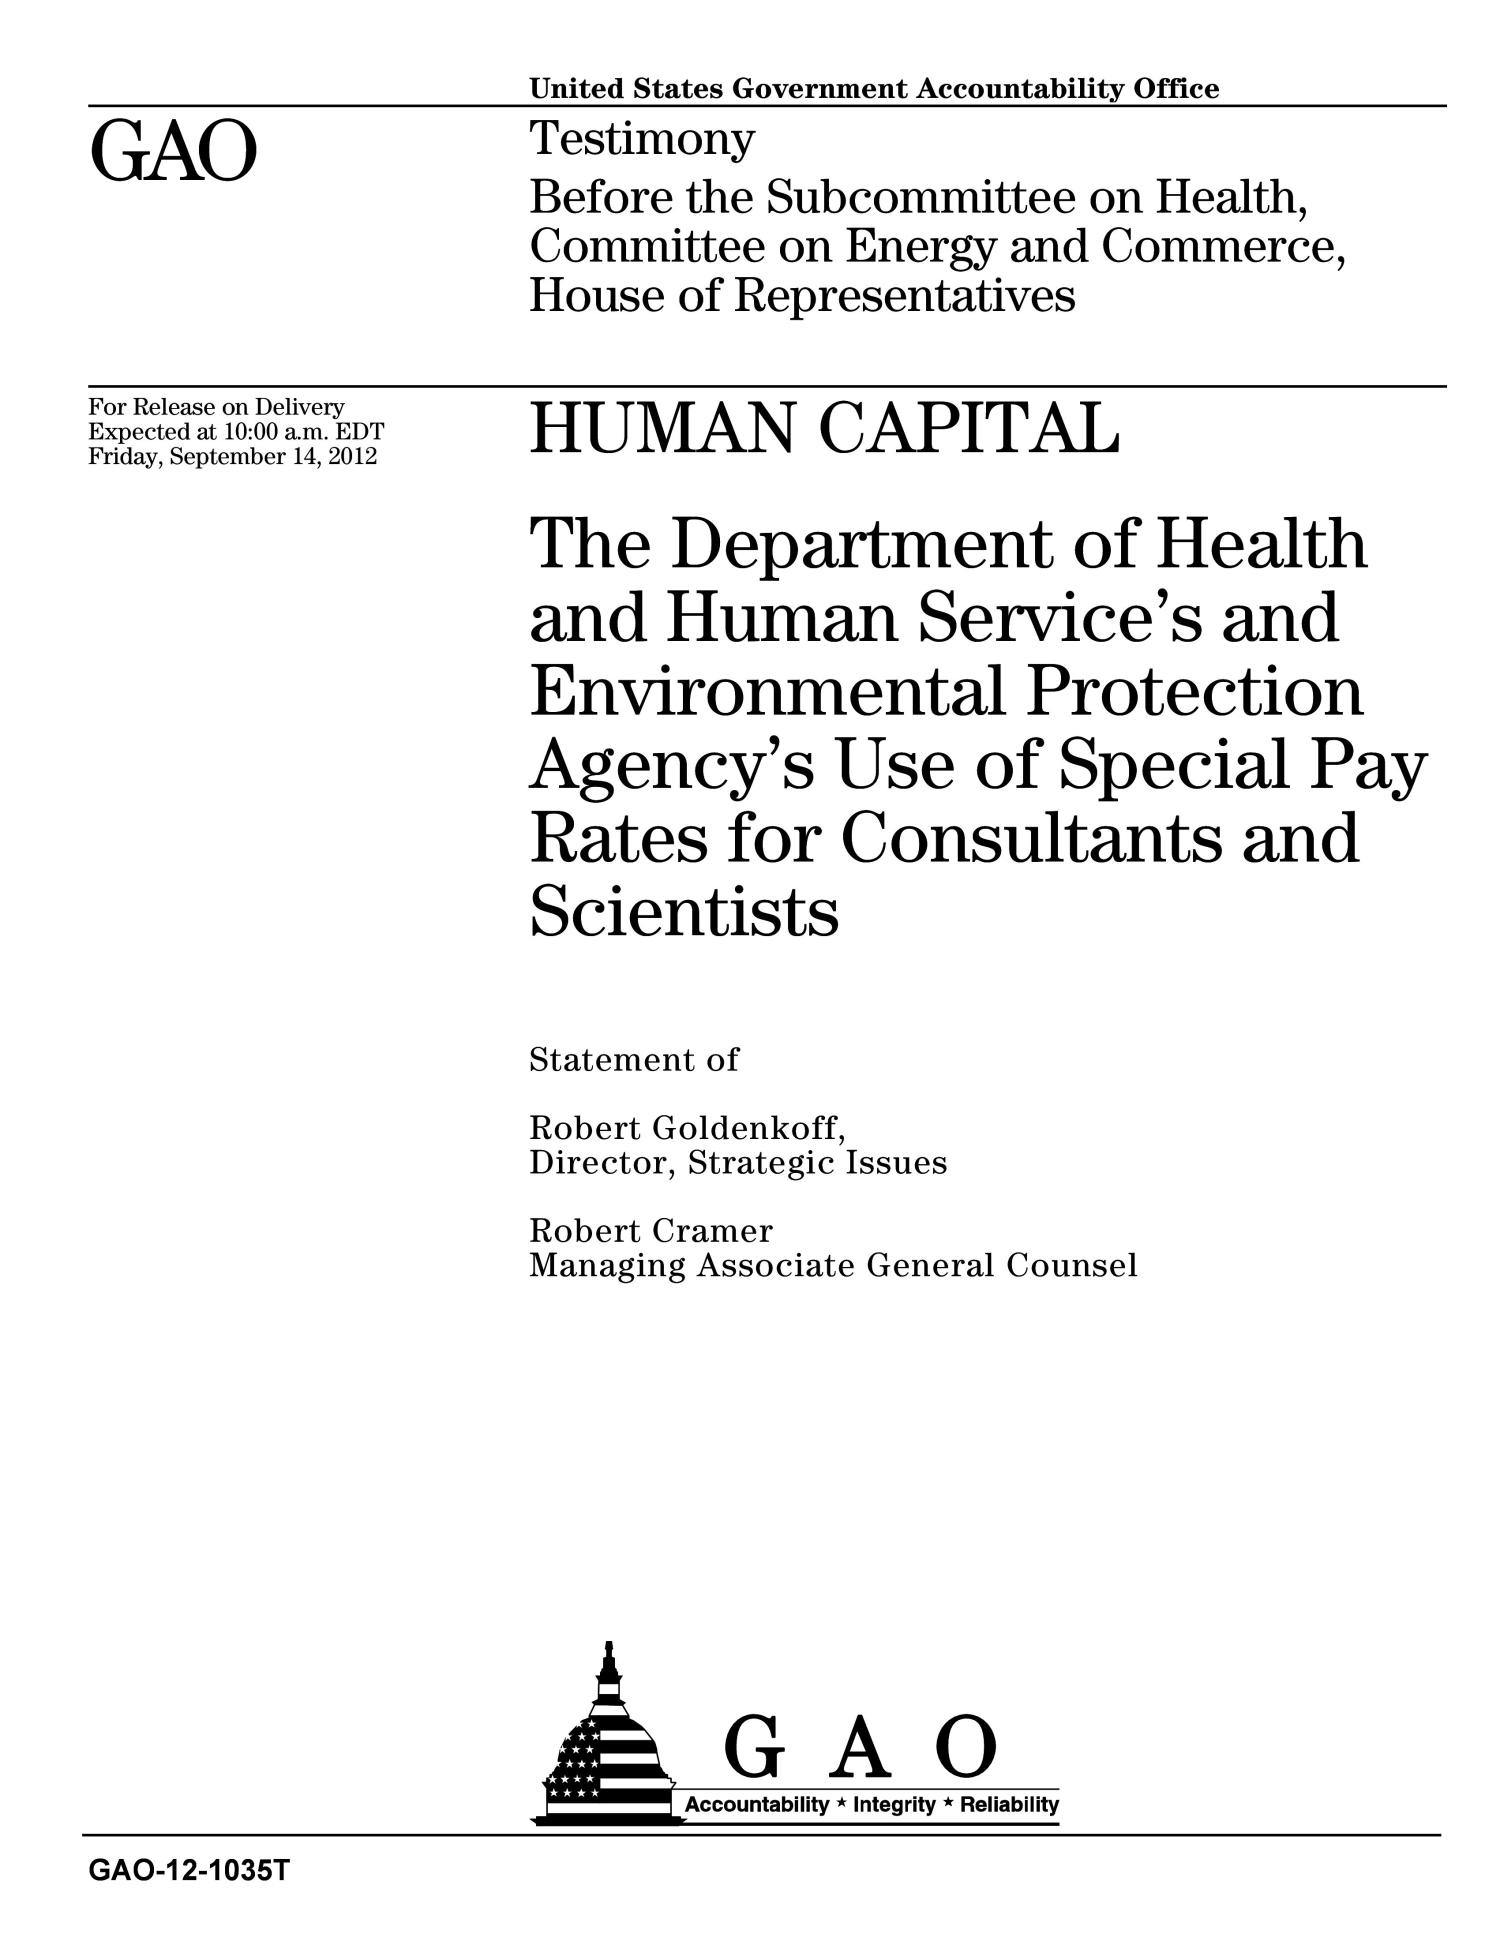 Human Capital: The Department of Health and Human Service's and Environmental Protection Agency's Use of Special Pay Rates for Consultants and Scientists                                                                                                      [Sequence #]: 1 of 23